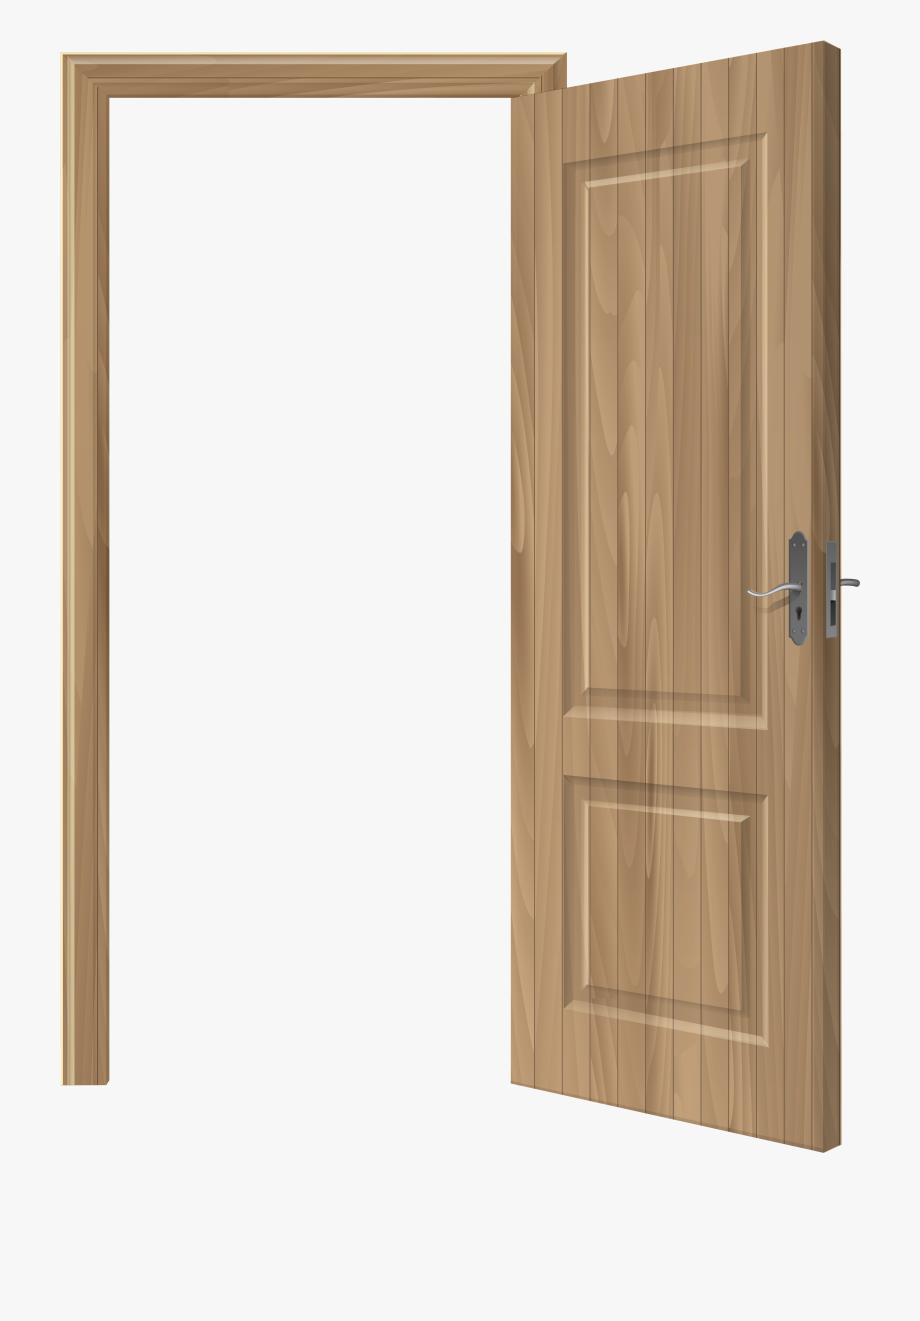 Open Wooden Door Png Clip Art.